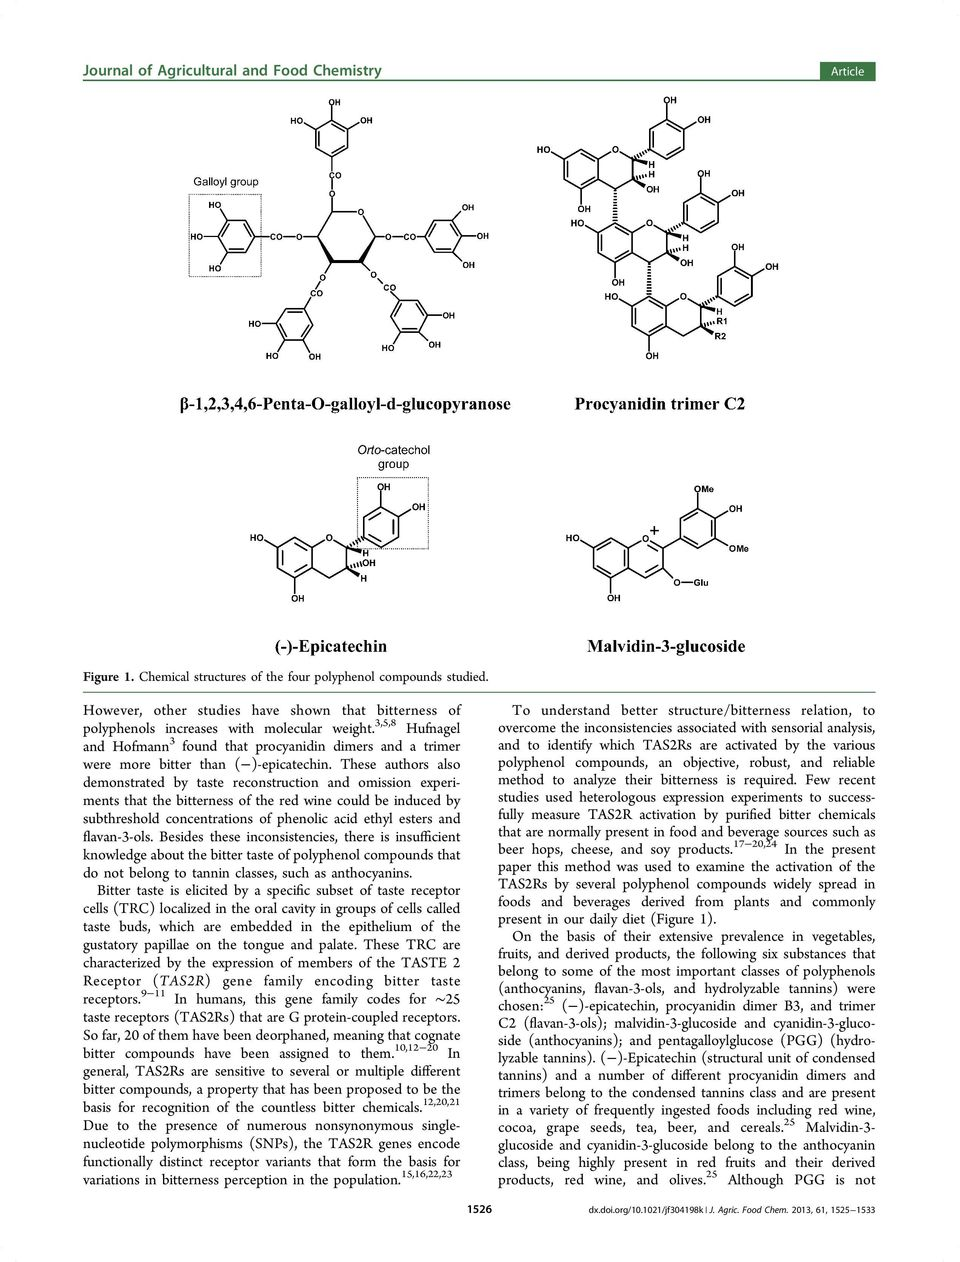 These authors also demonstrated by taste reconstruction and omission experiments that the bitterness of the red wine could be induced by subthreshold concentrations of phenolic acid ethyl esters and